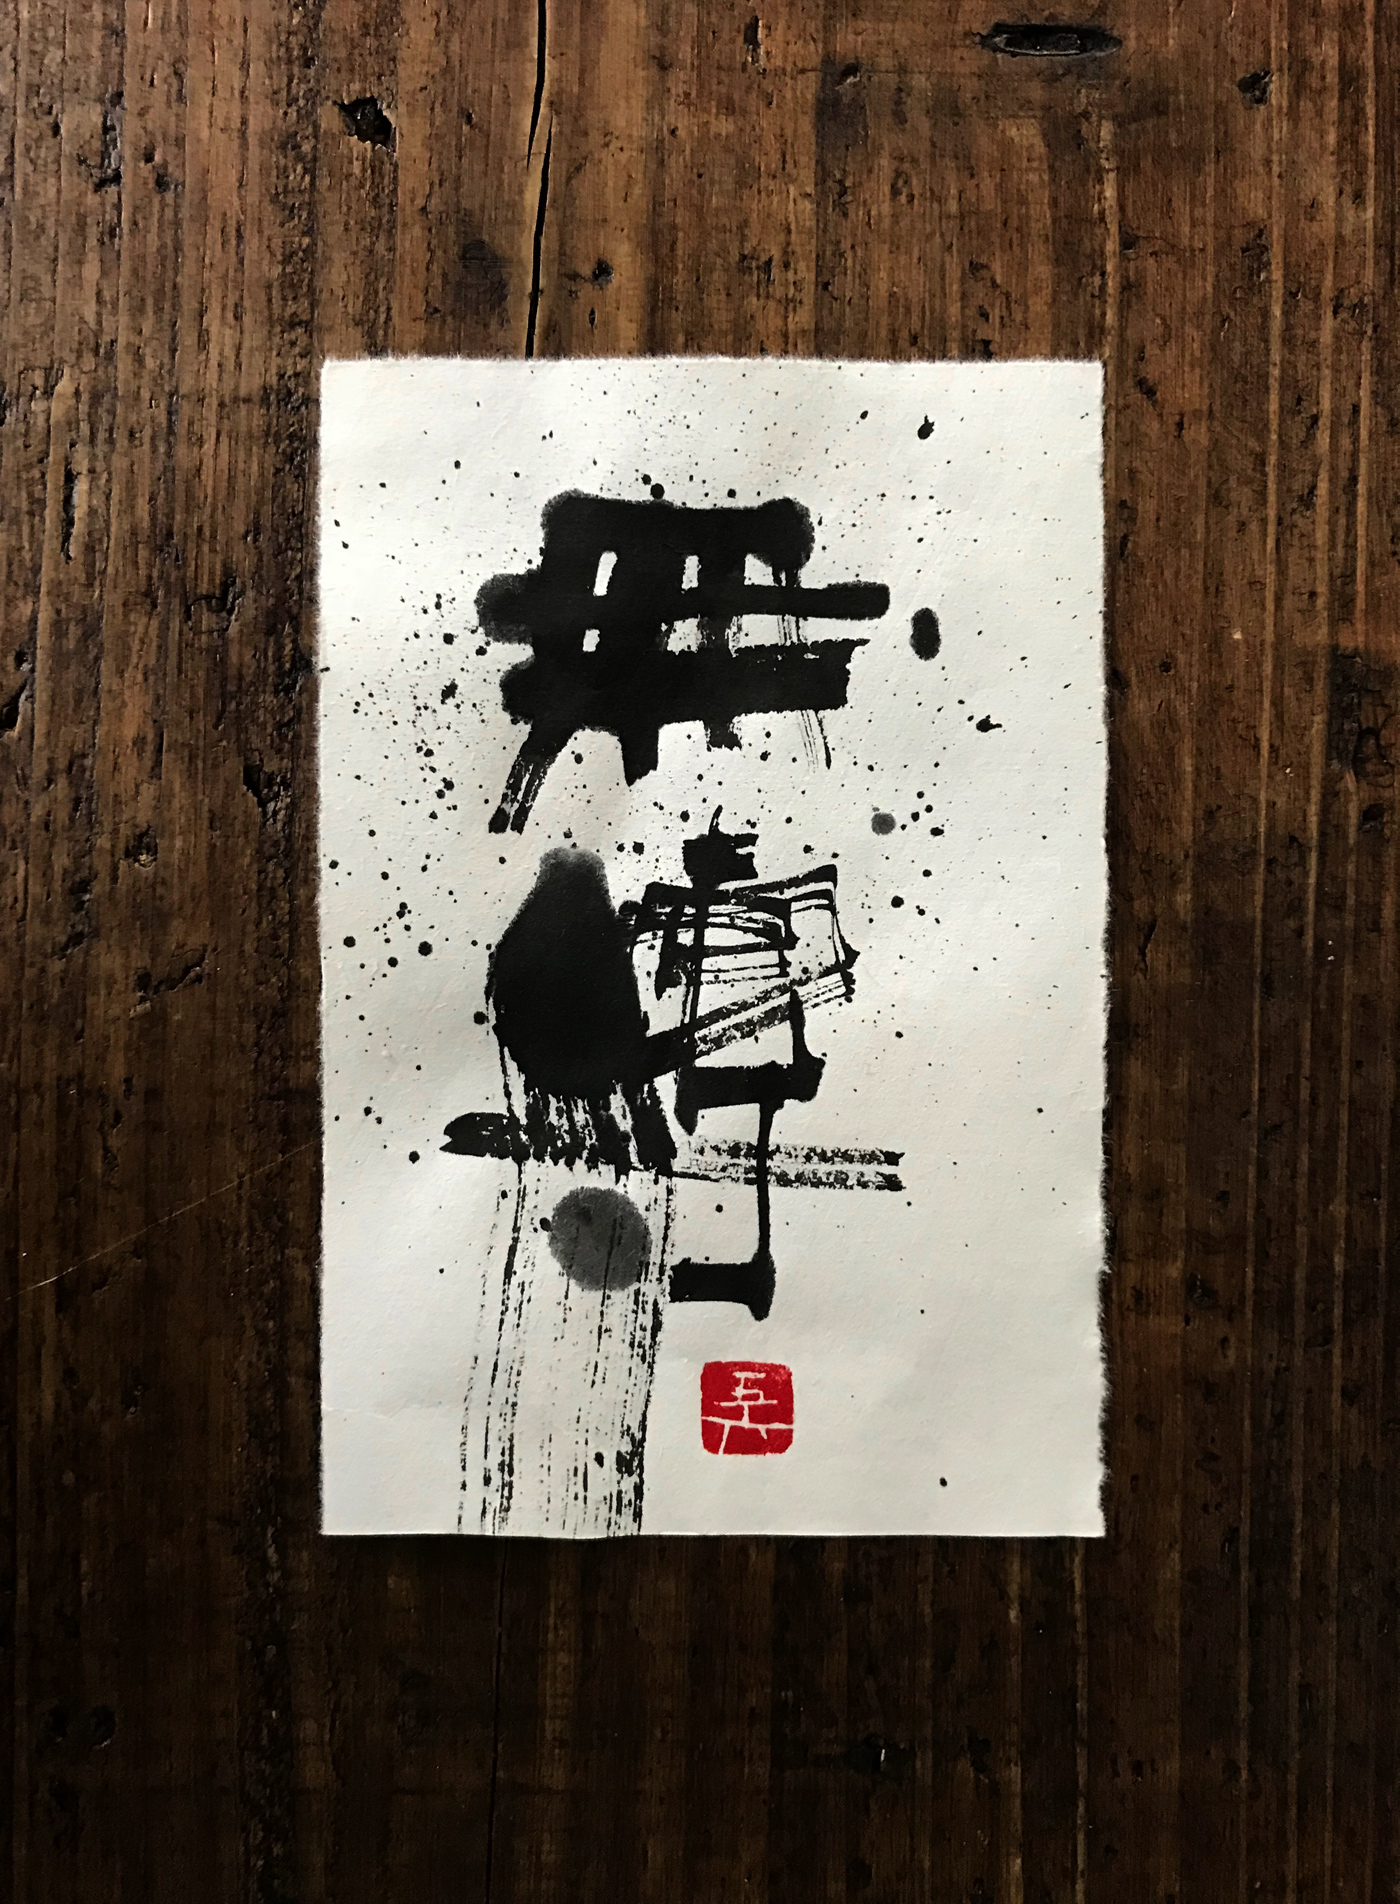 無傳(無伝)think by oneself  書道作品 japaneseart japanesecalligraphy